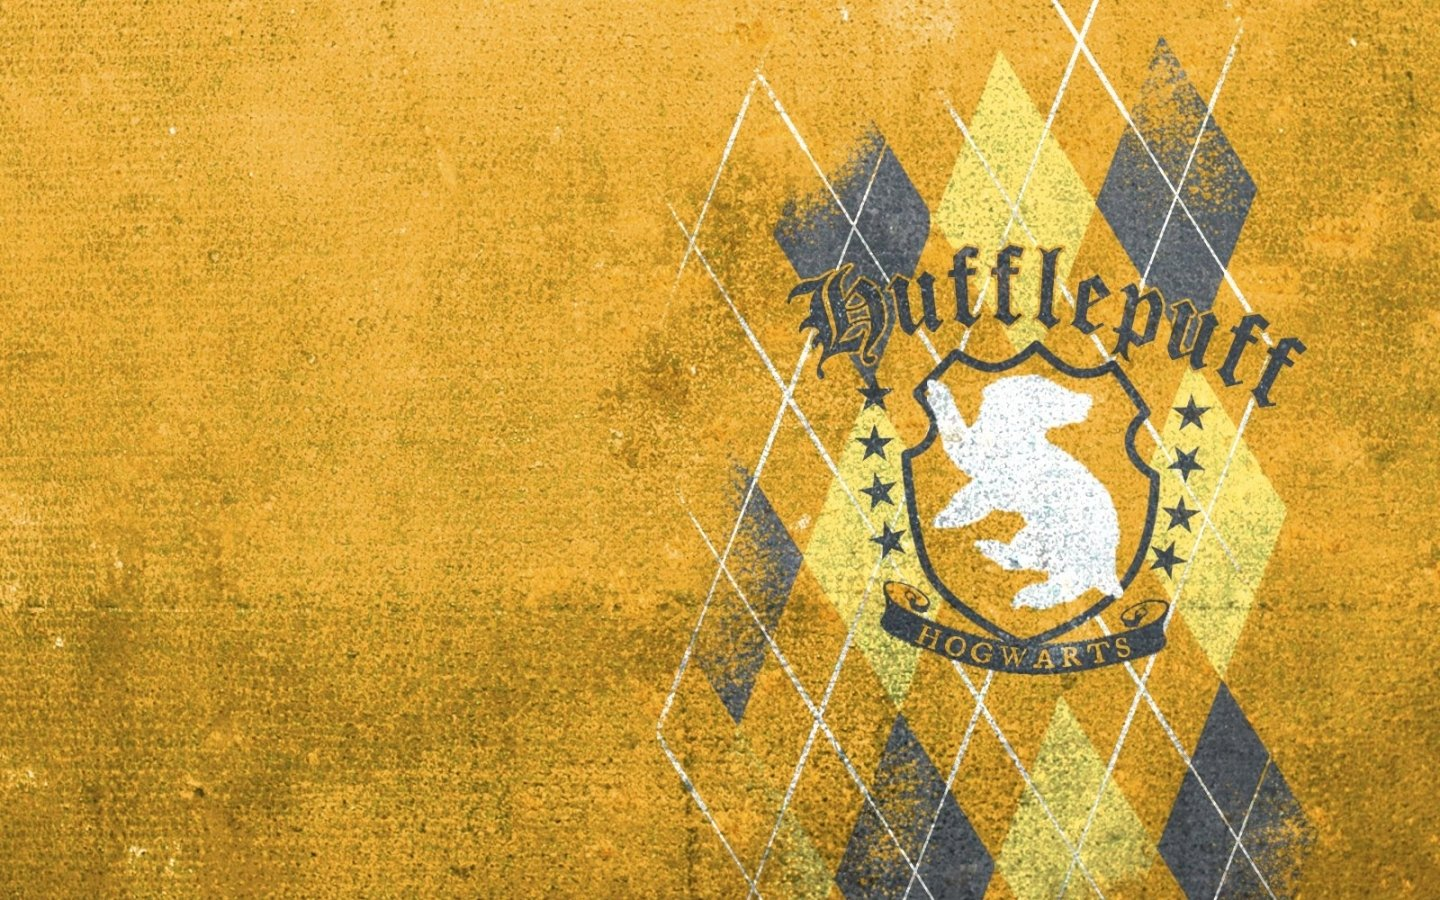 Free Download Harry Potter Hufflepuff Hogwarts 1600x1089